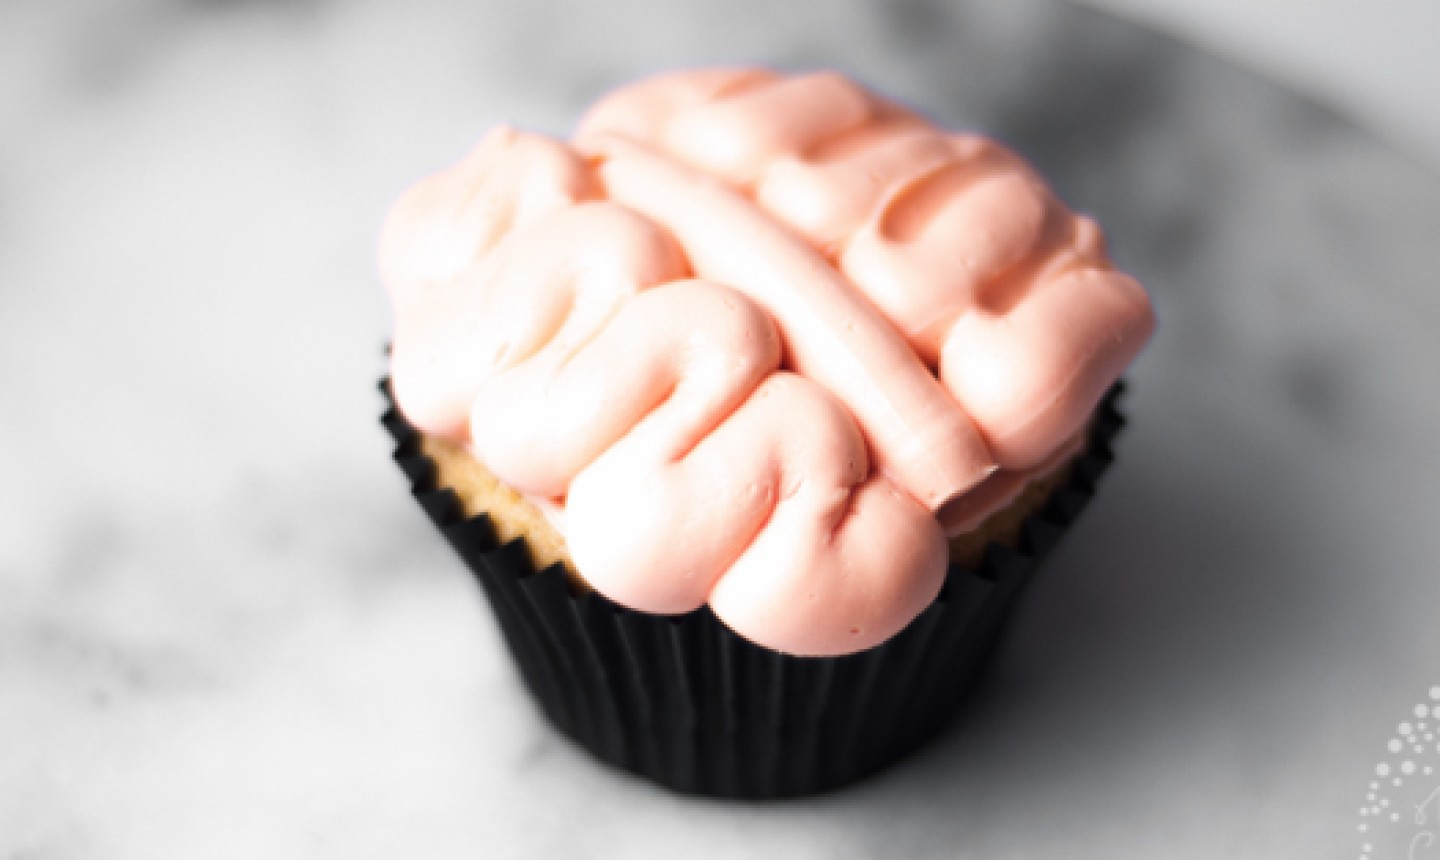 Cupcake with frosting brains